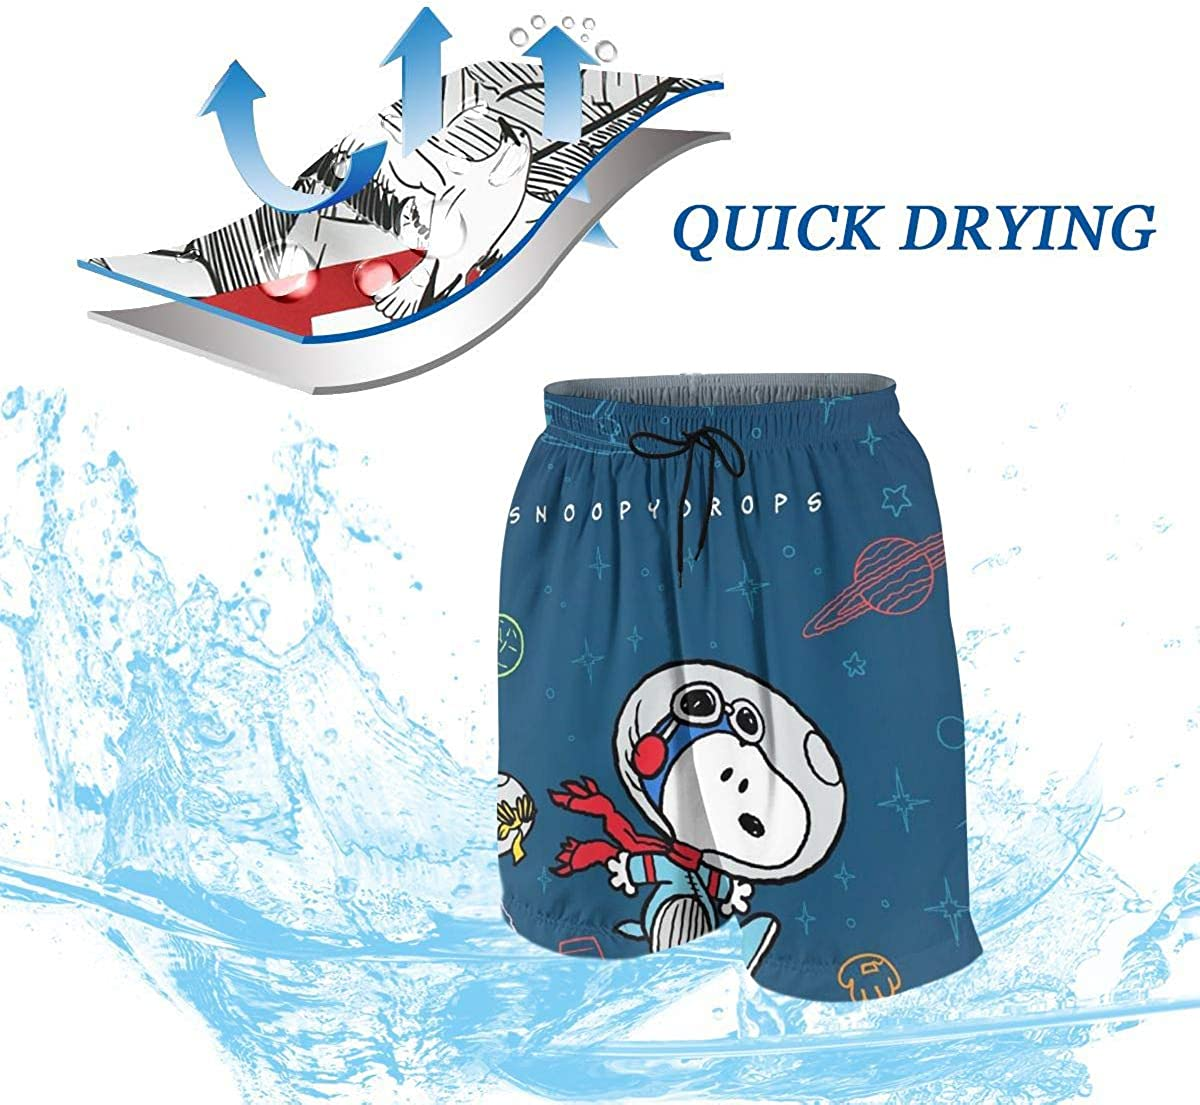 Swim Trunks Snoopy Drops Quick Dry Beach Board Shorts Bathing Suit with Side Pockets for Teen Boys